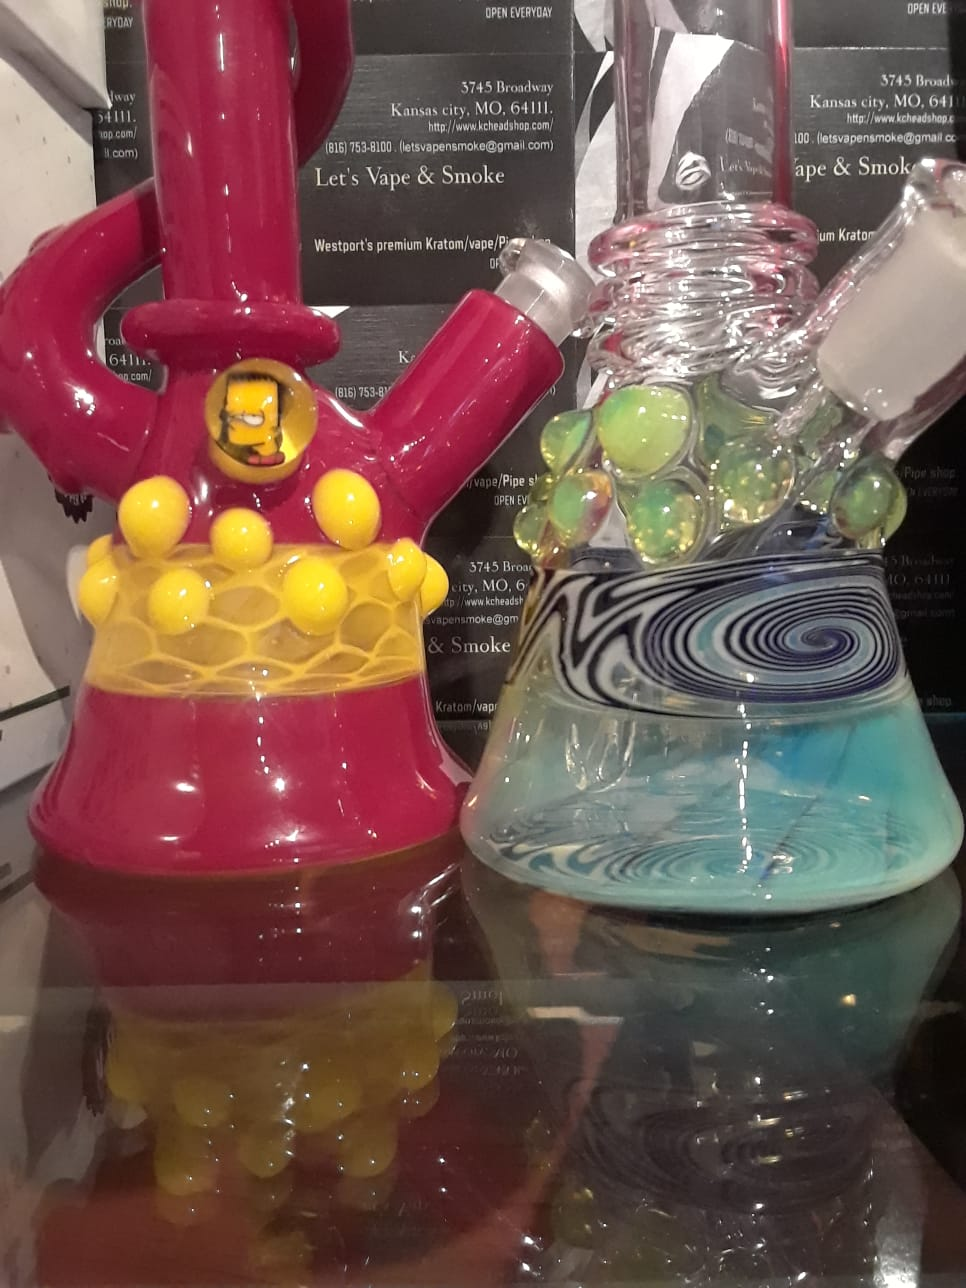 Top of the line Glass Pipes